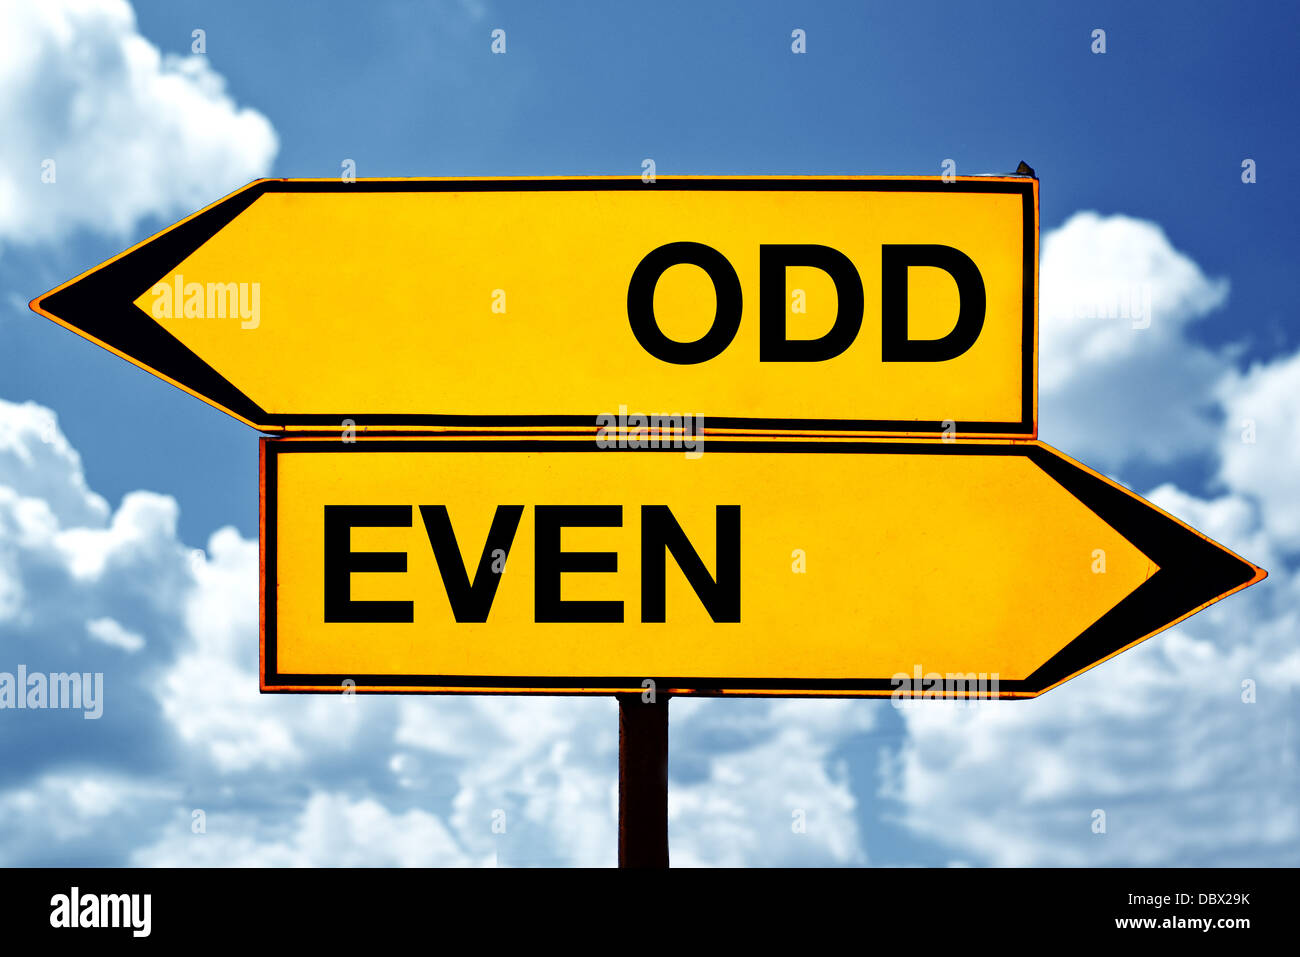 Odd or even, opposite signs. Two opposite signs against blue sky background. Stock Photo